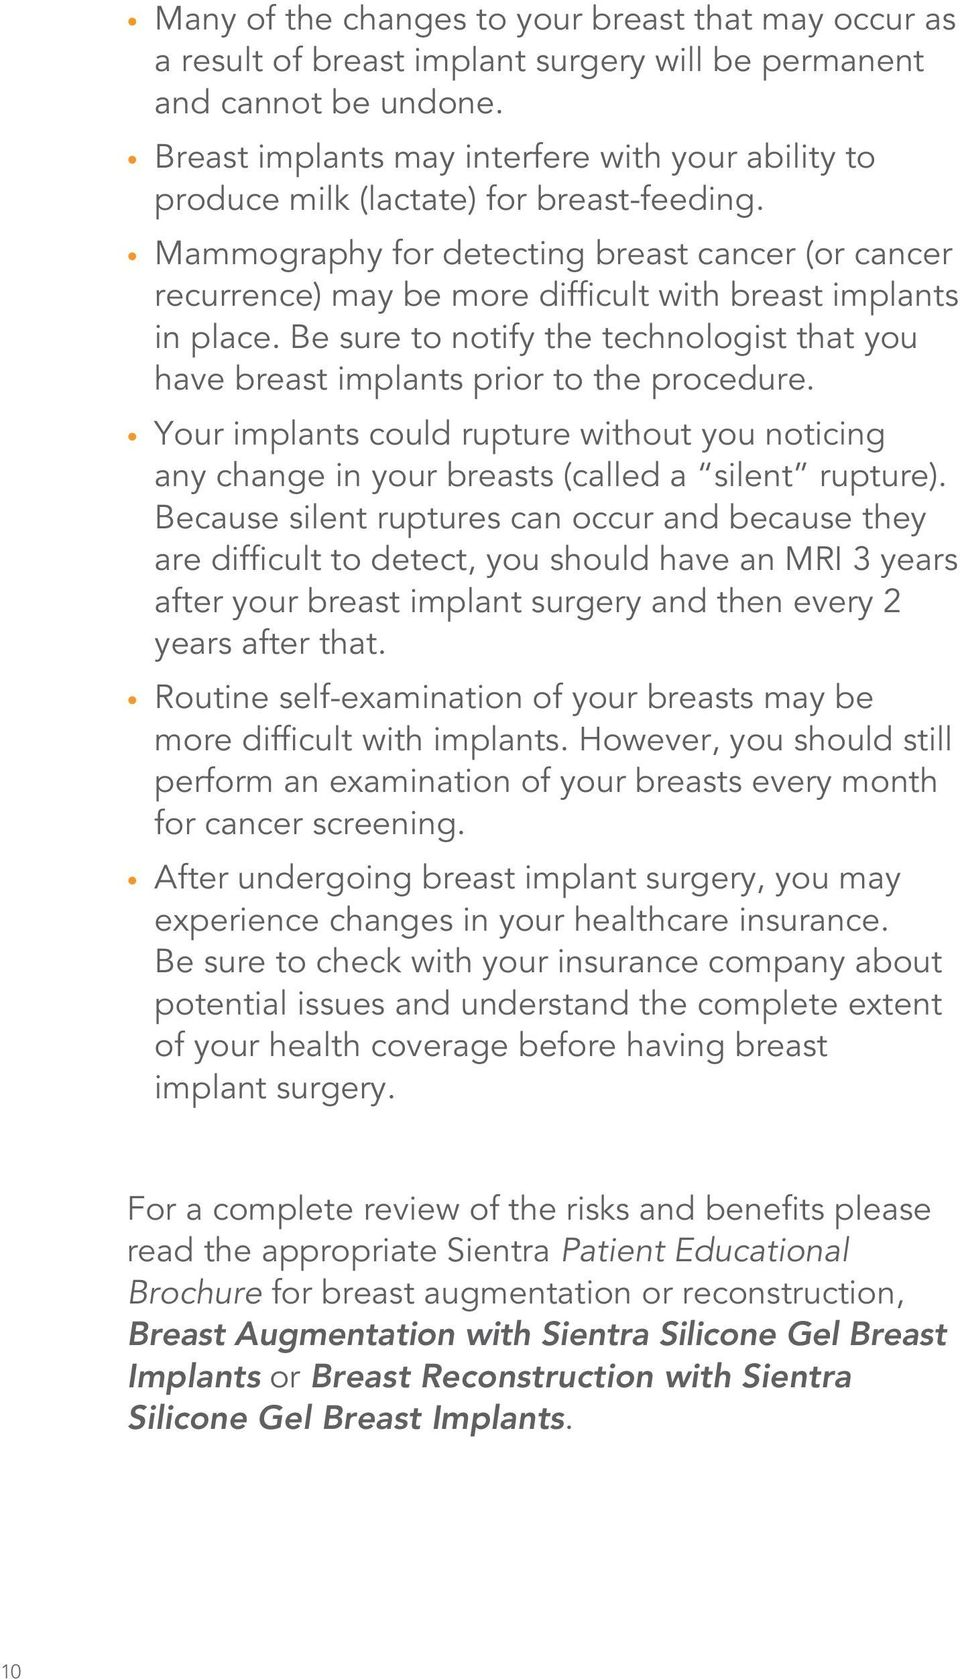 Mammography for detecting breast cancer (or cancer recurrence) may be more difficult with breast implants in place.